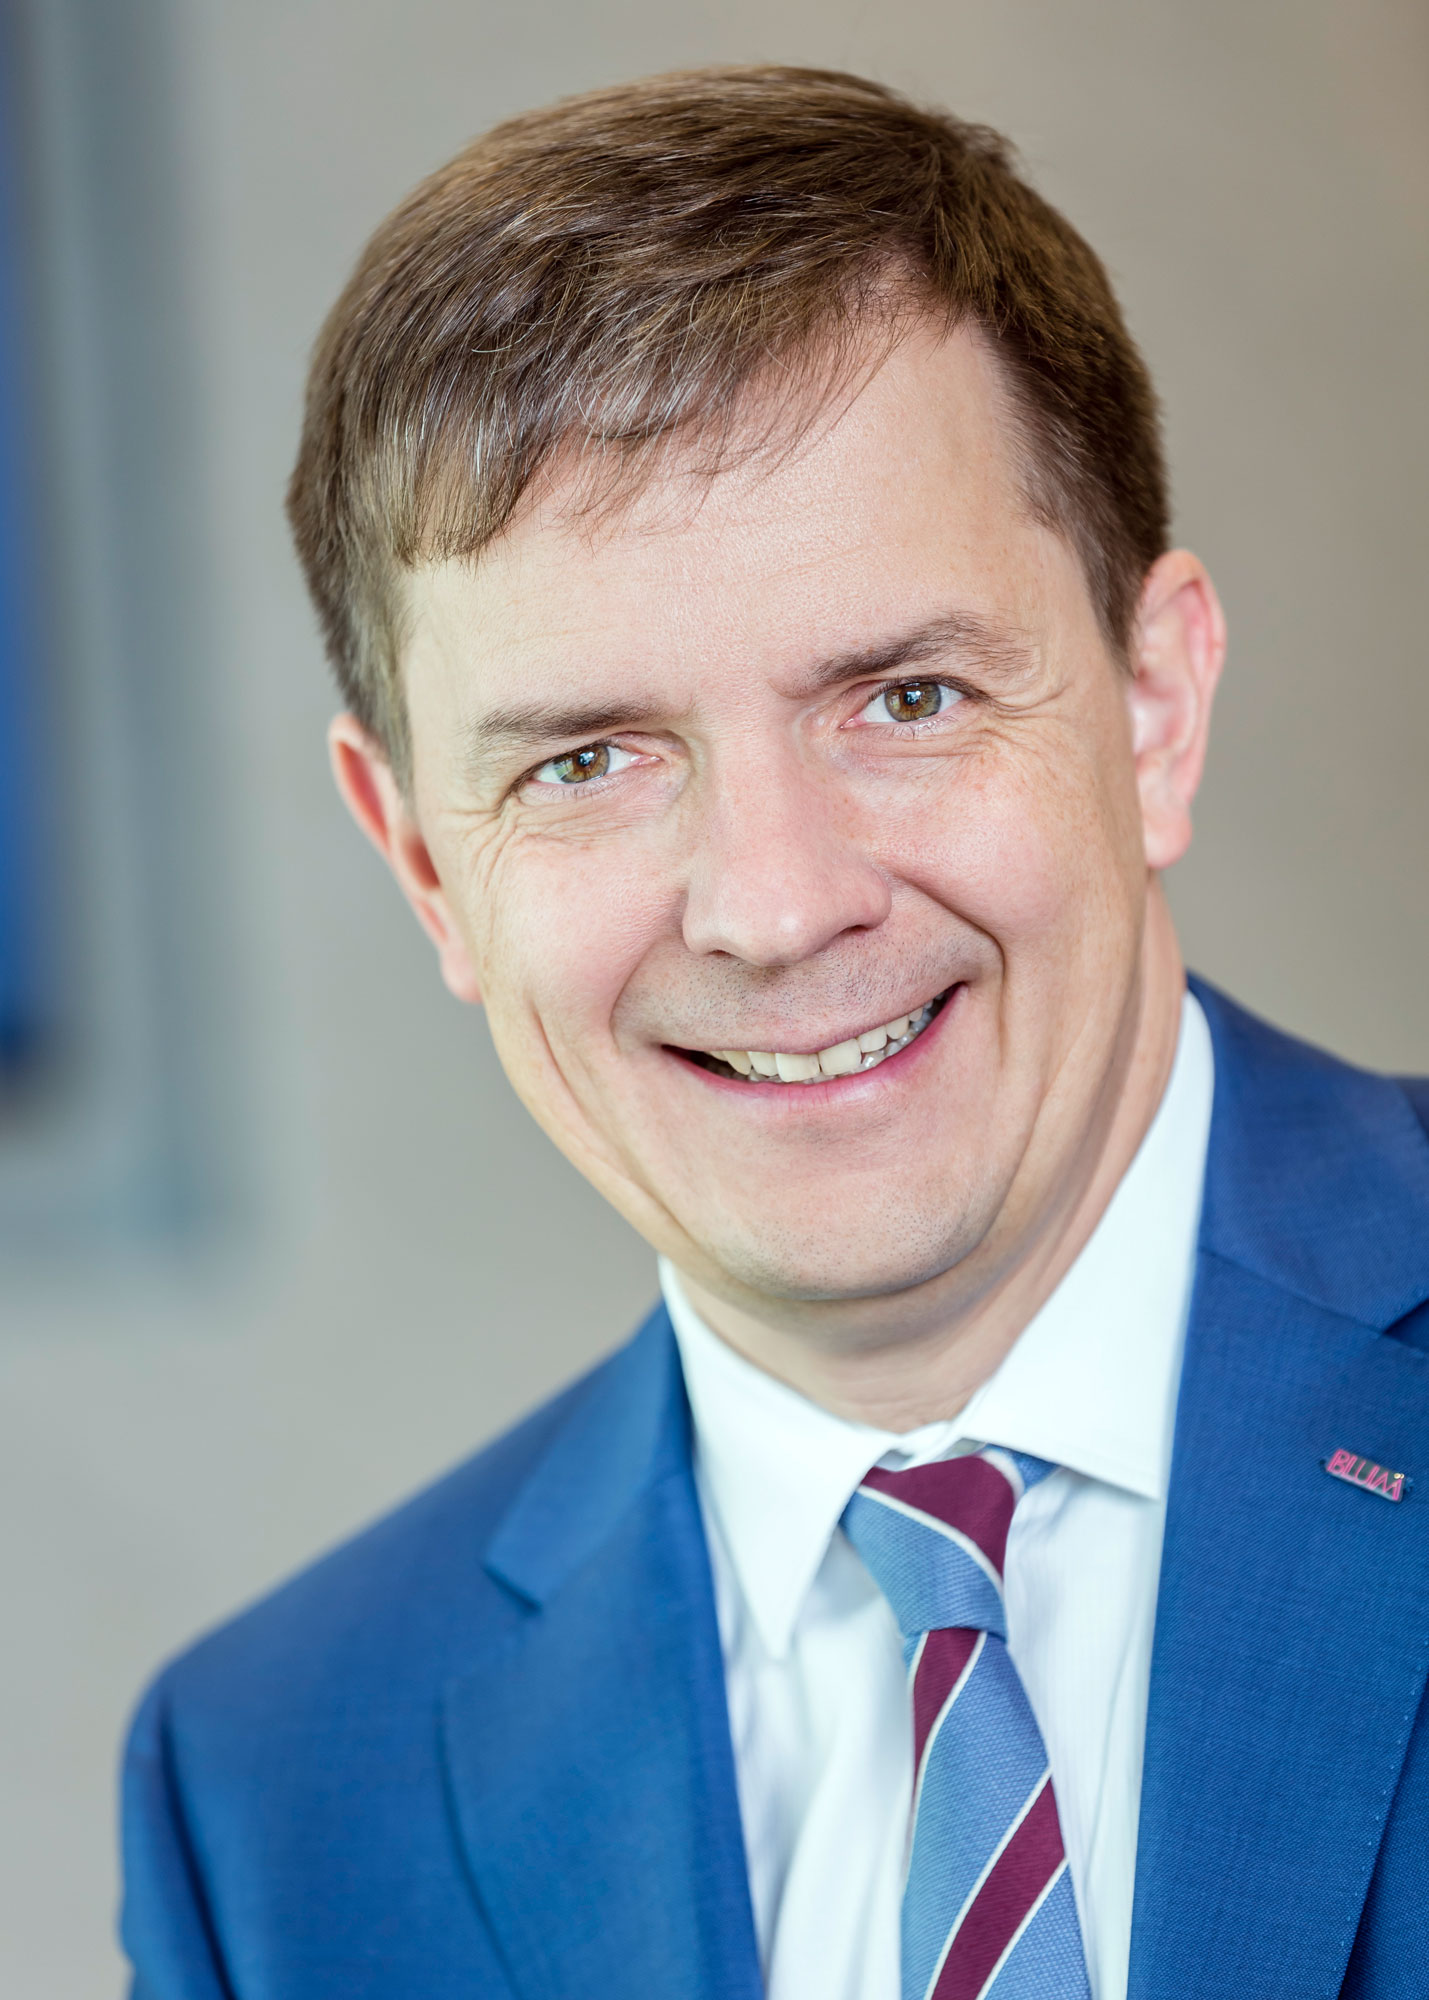 Alexander Blum, CEO of Blum-Novotest GmbH